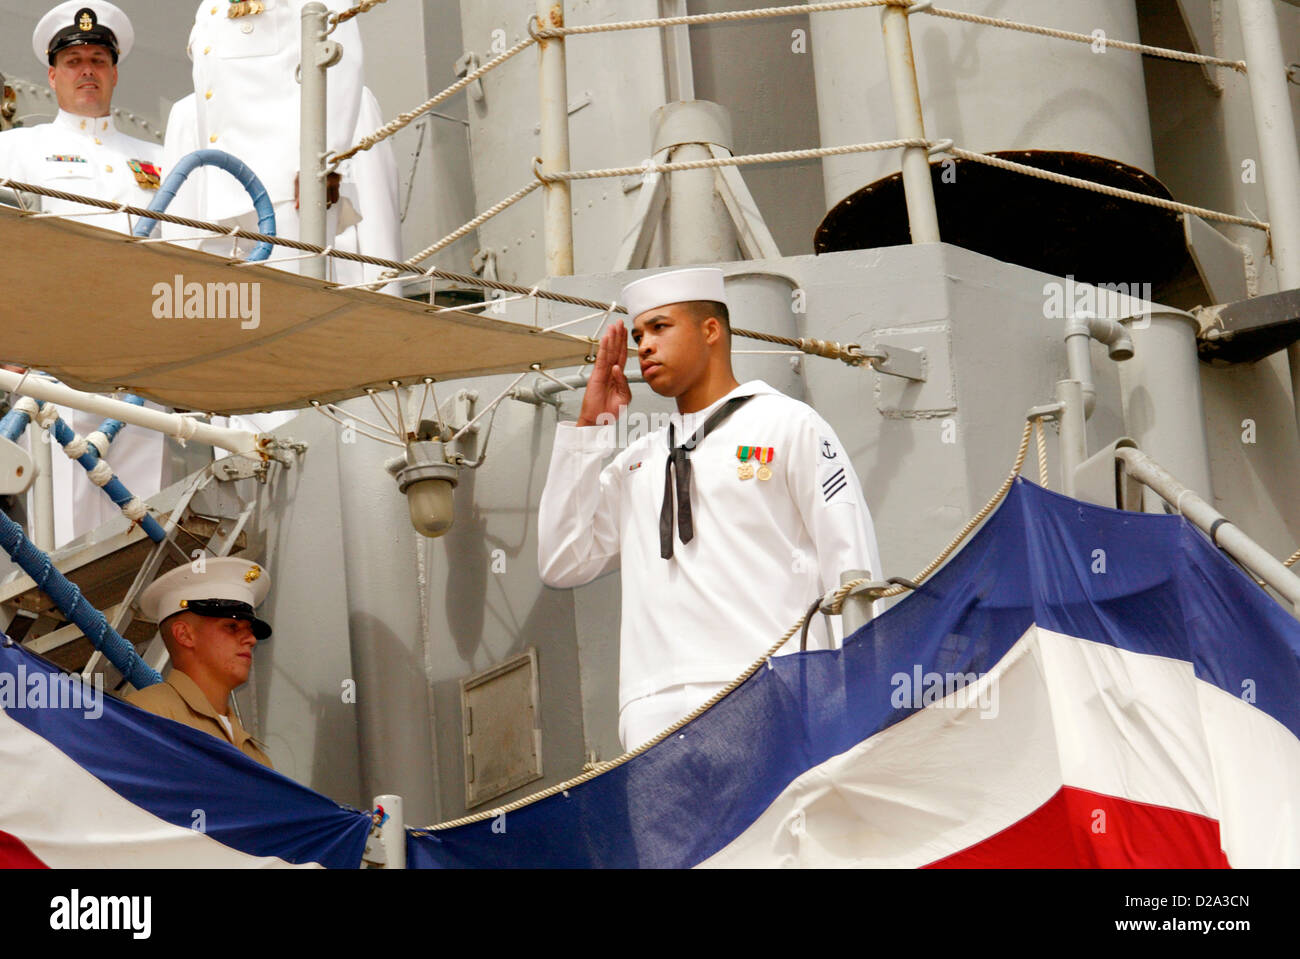 Honolulu Hawaii Crew Member Salutes Executive Officer Uss Frederick Before Debarking Ship During Decommissioning Stock Photo